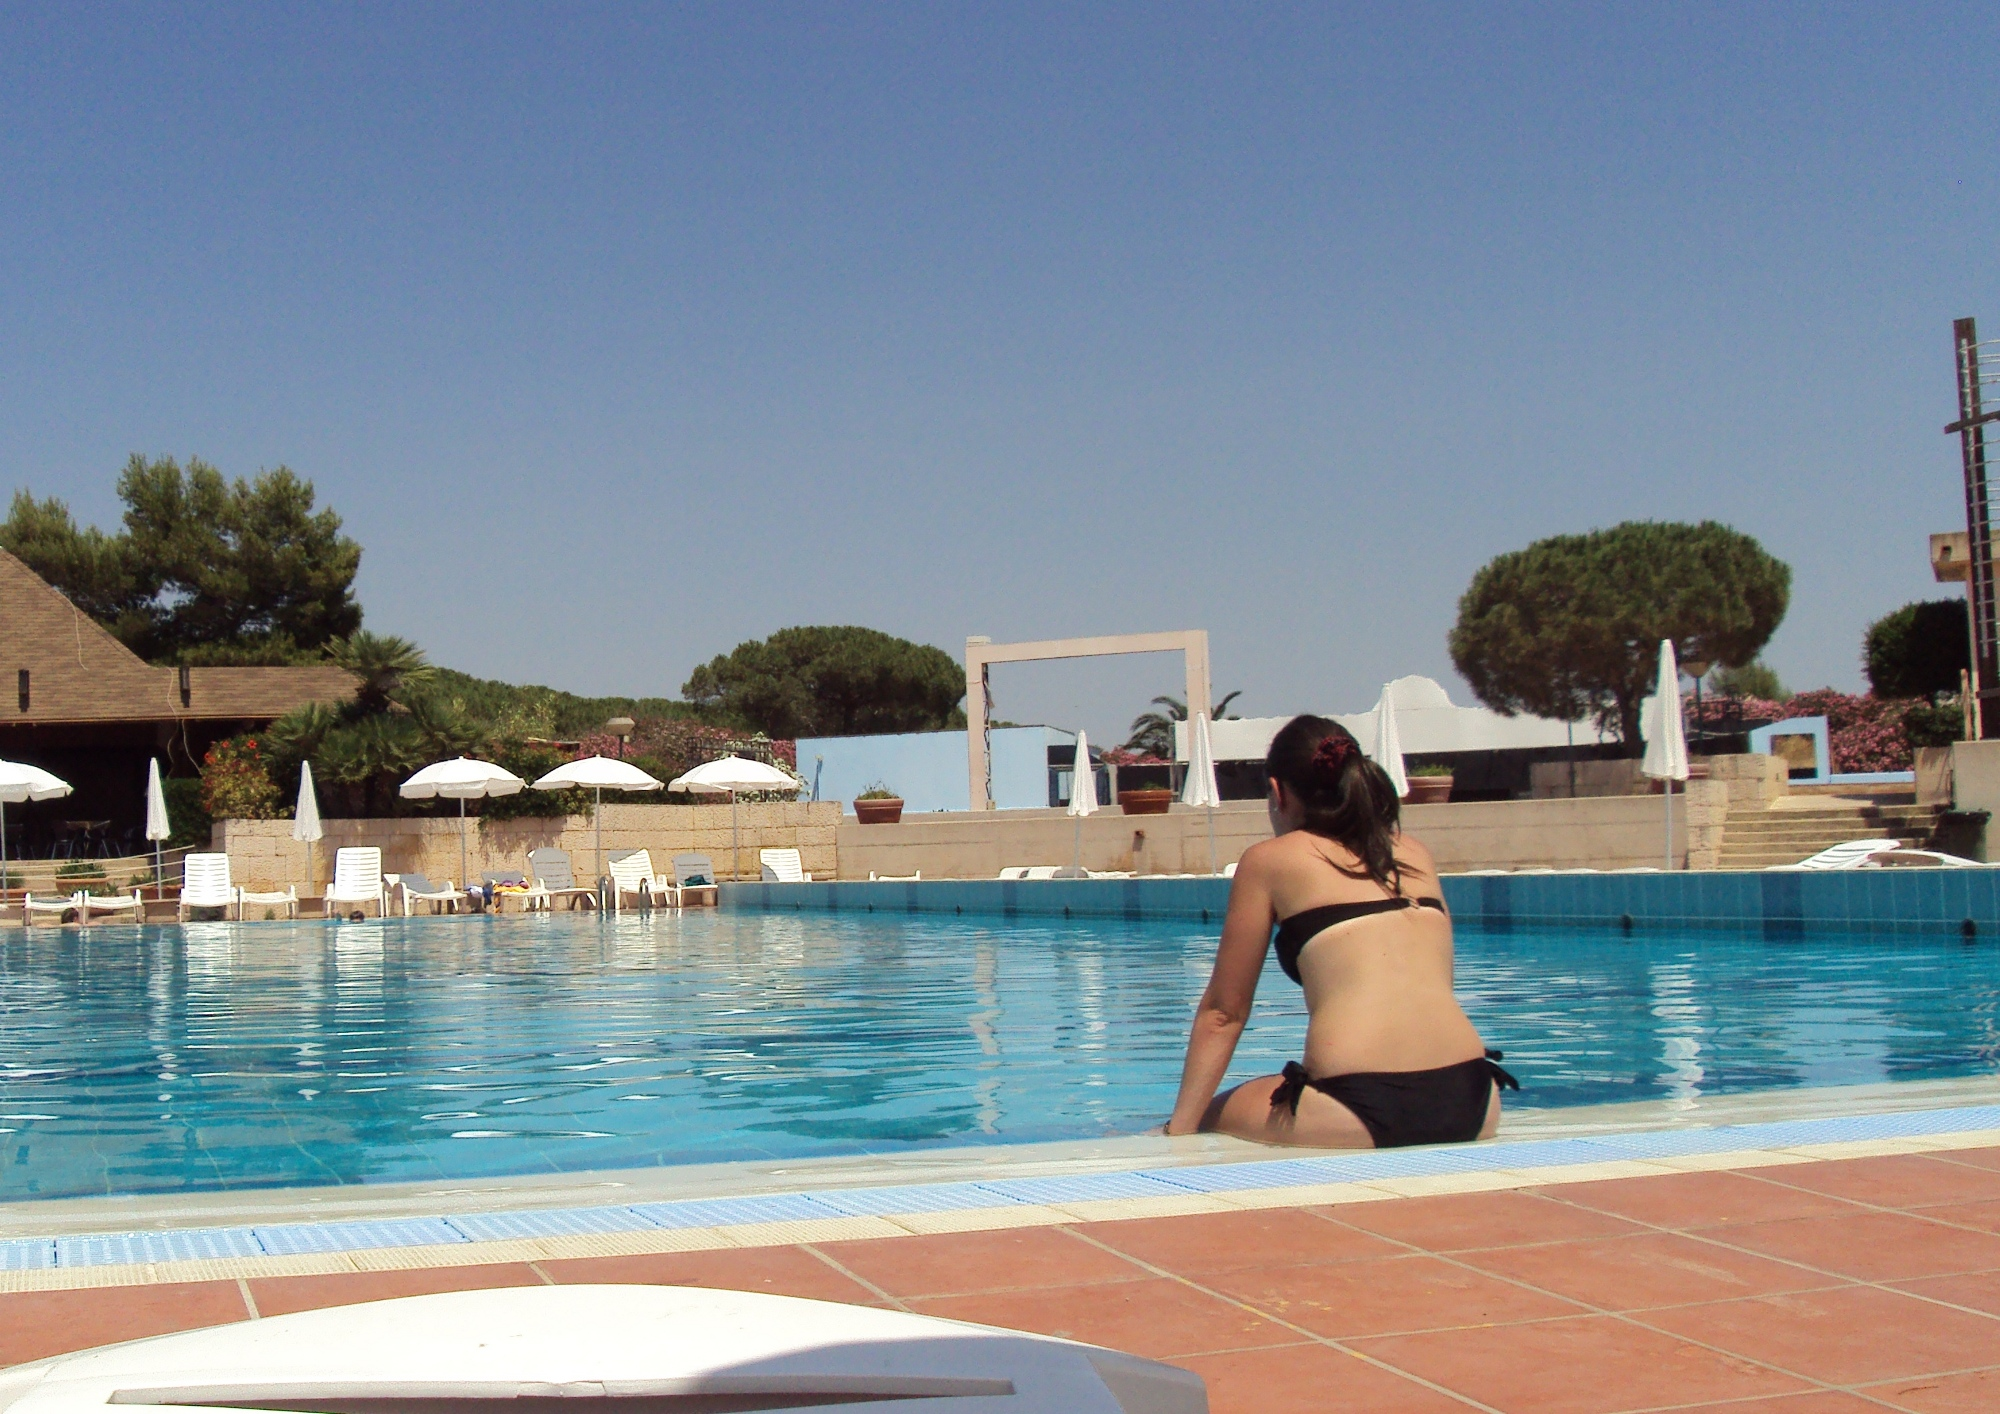 Villaggio turistico in Sicilia - Athena Resort